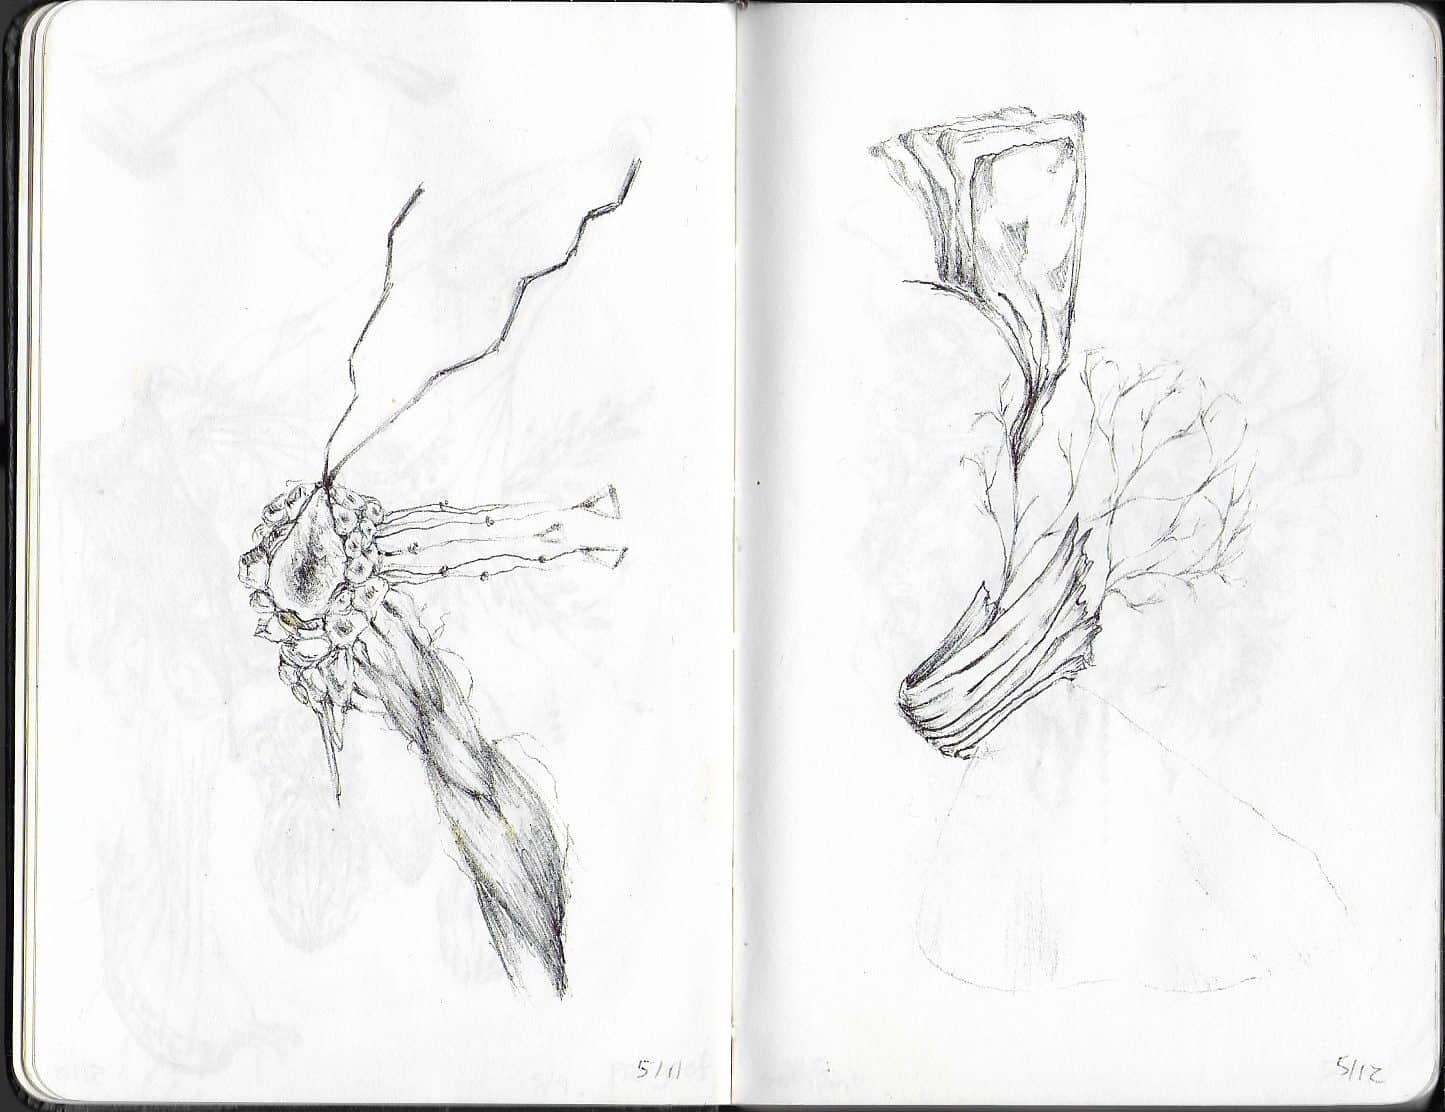 drawing of natural forms in pencil, reminiscent of plants and insects